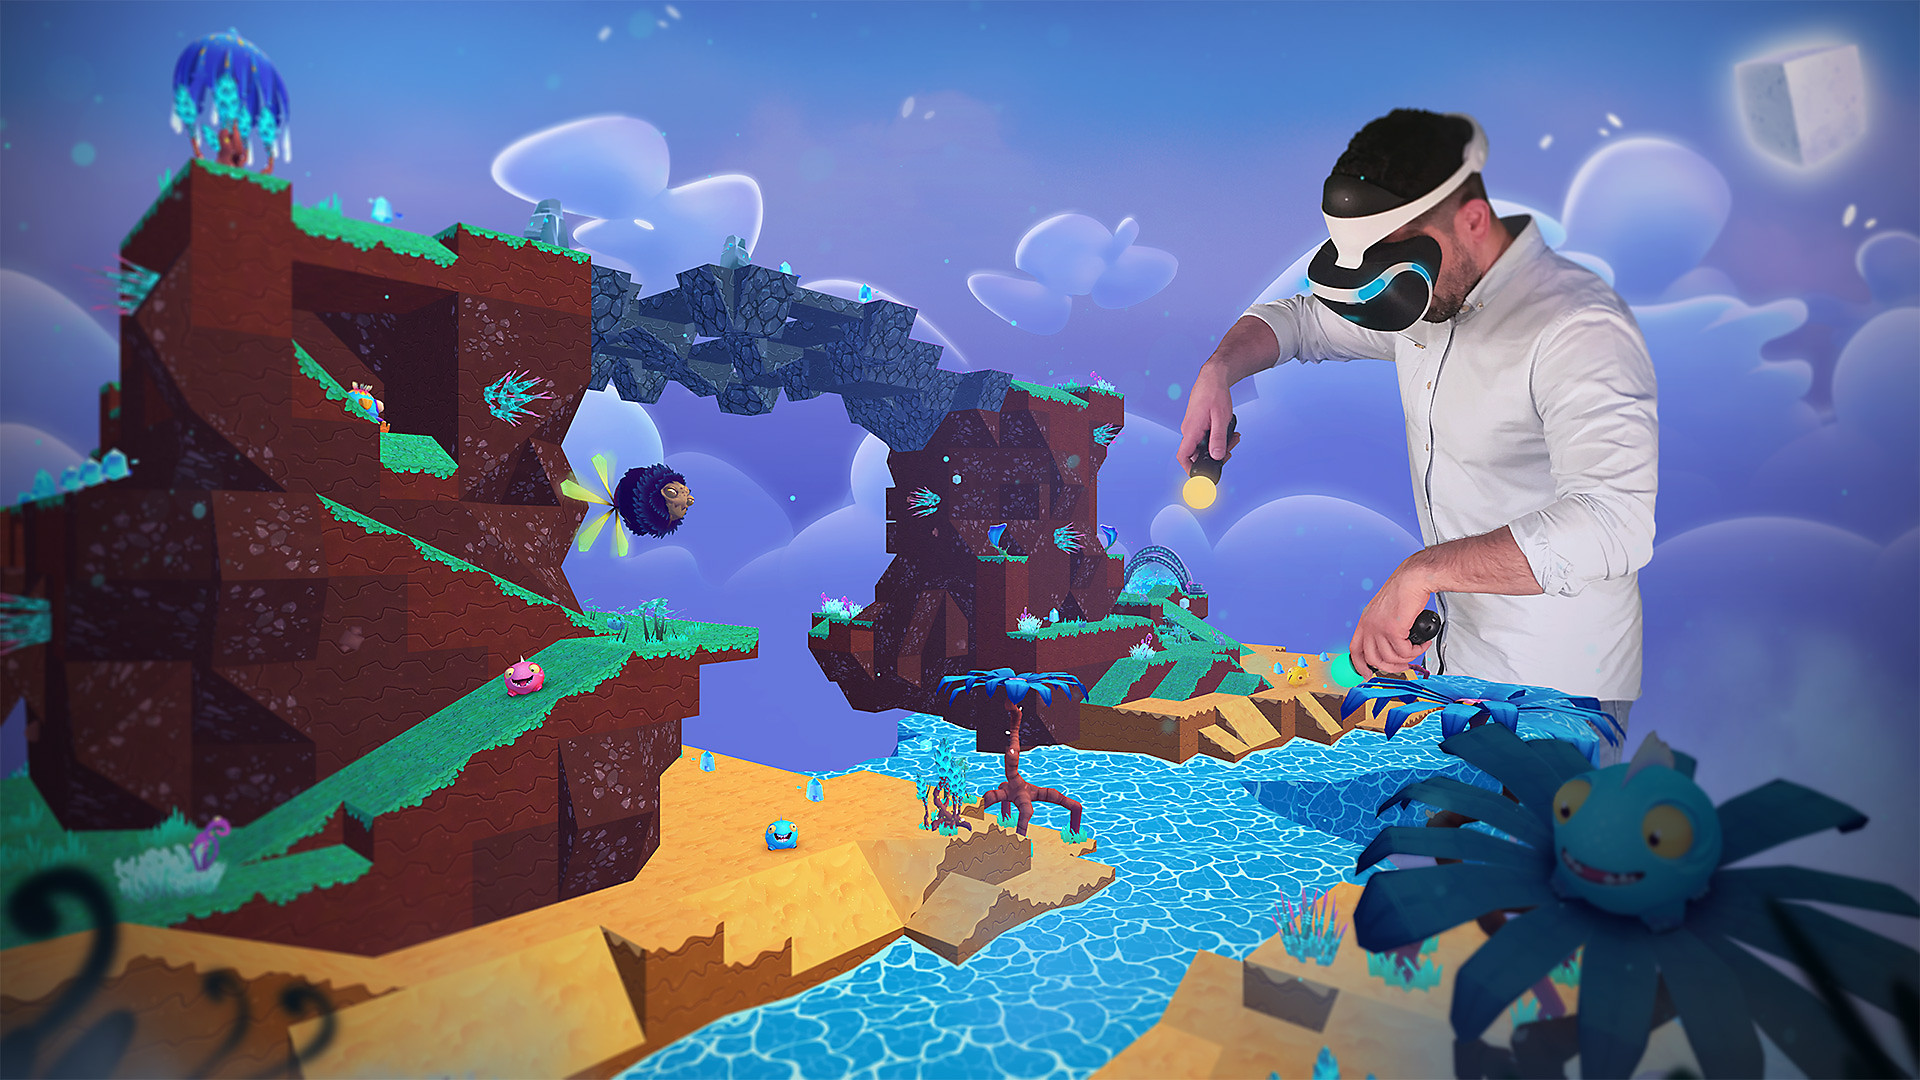 Island with player using VR headset and Move controllers